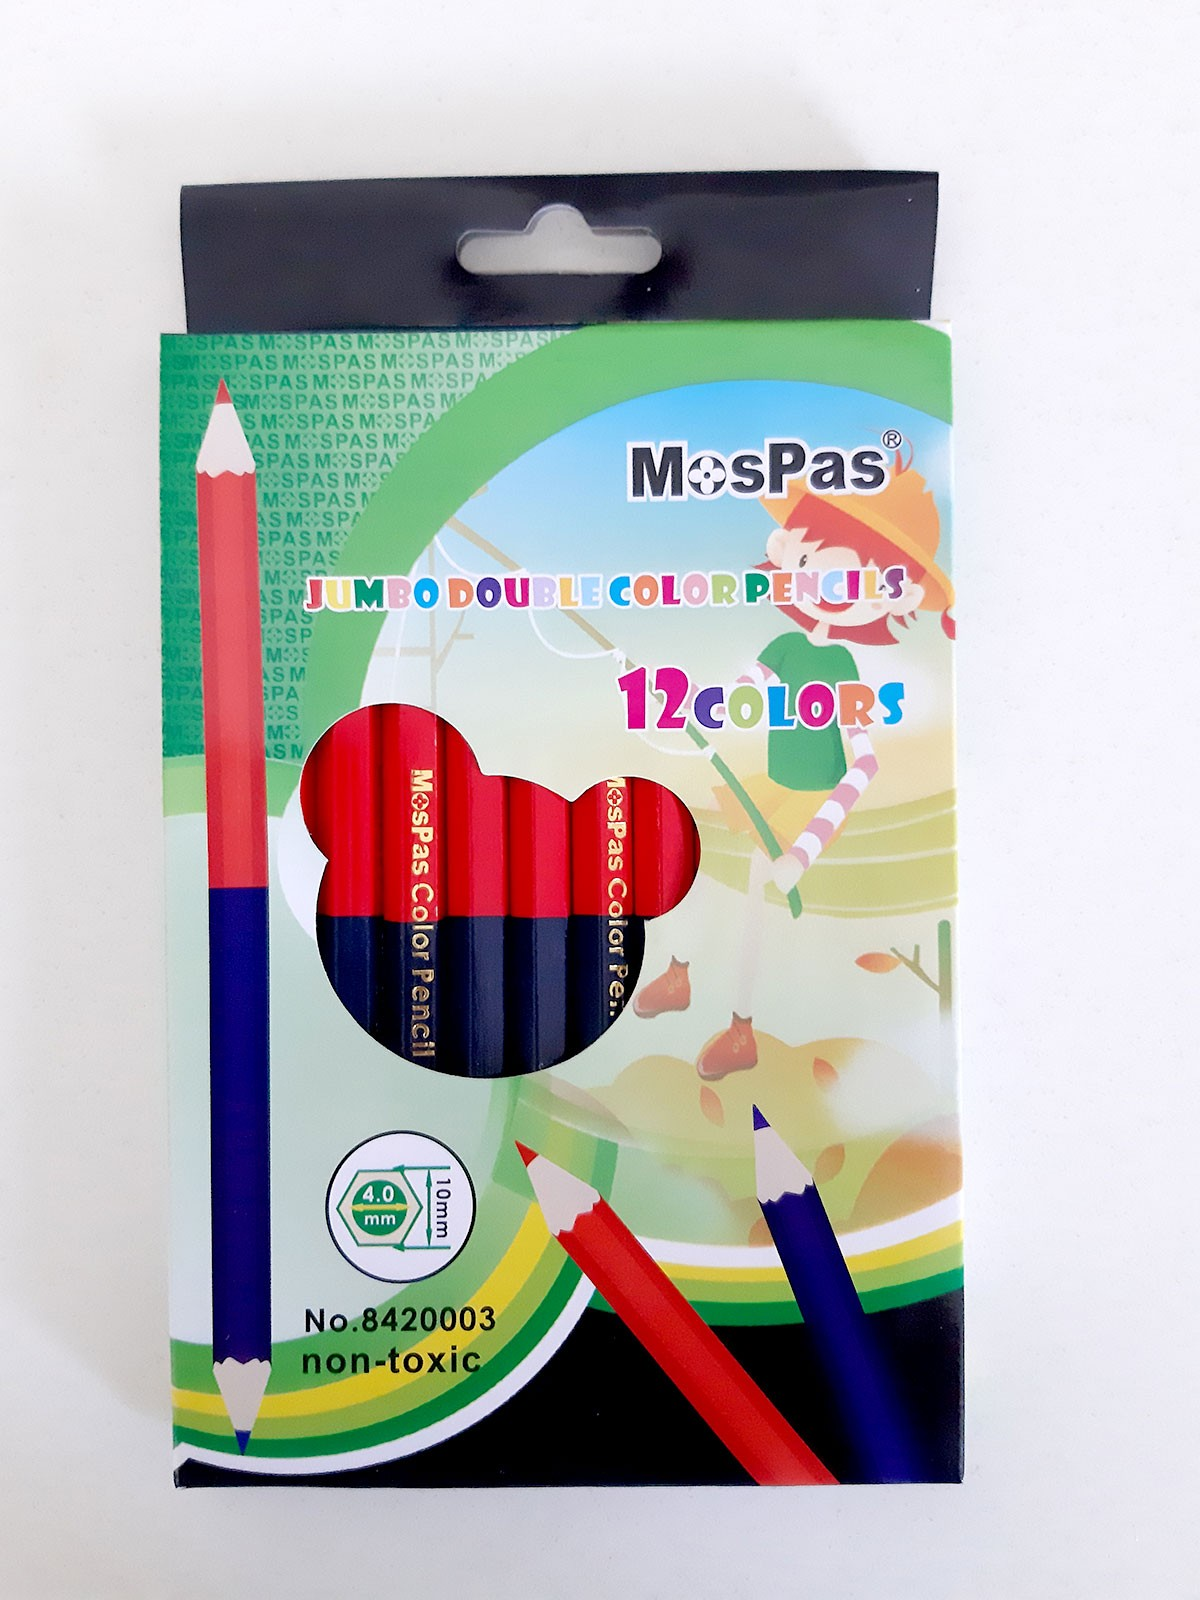 COLOR PENCIL JUMBO BLUE & RED 12PCS